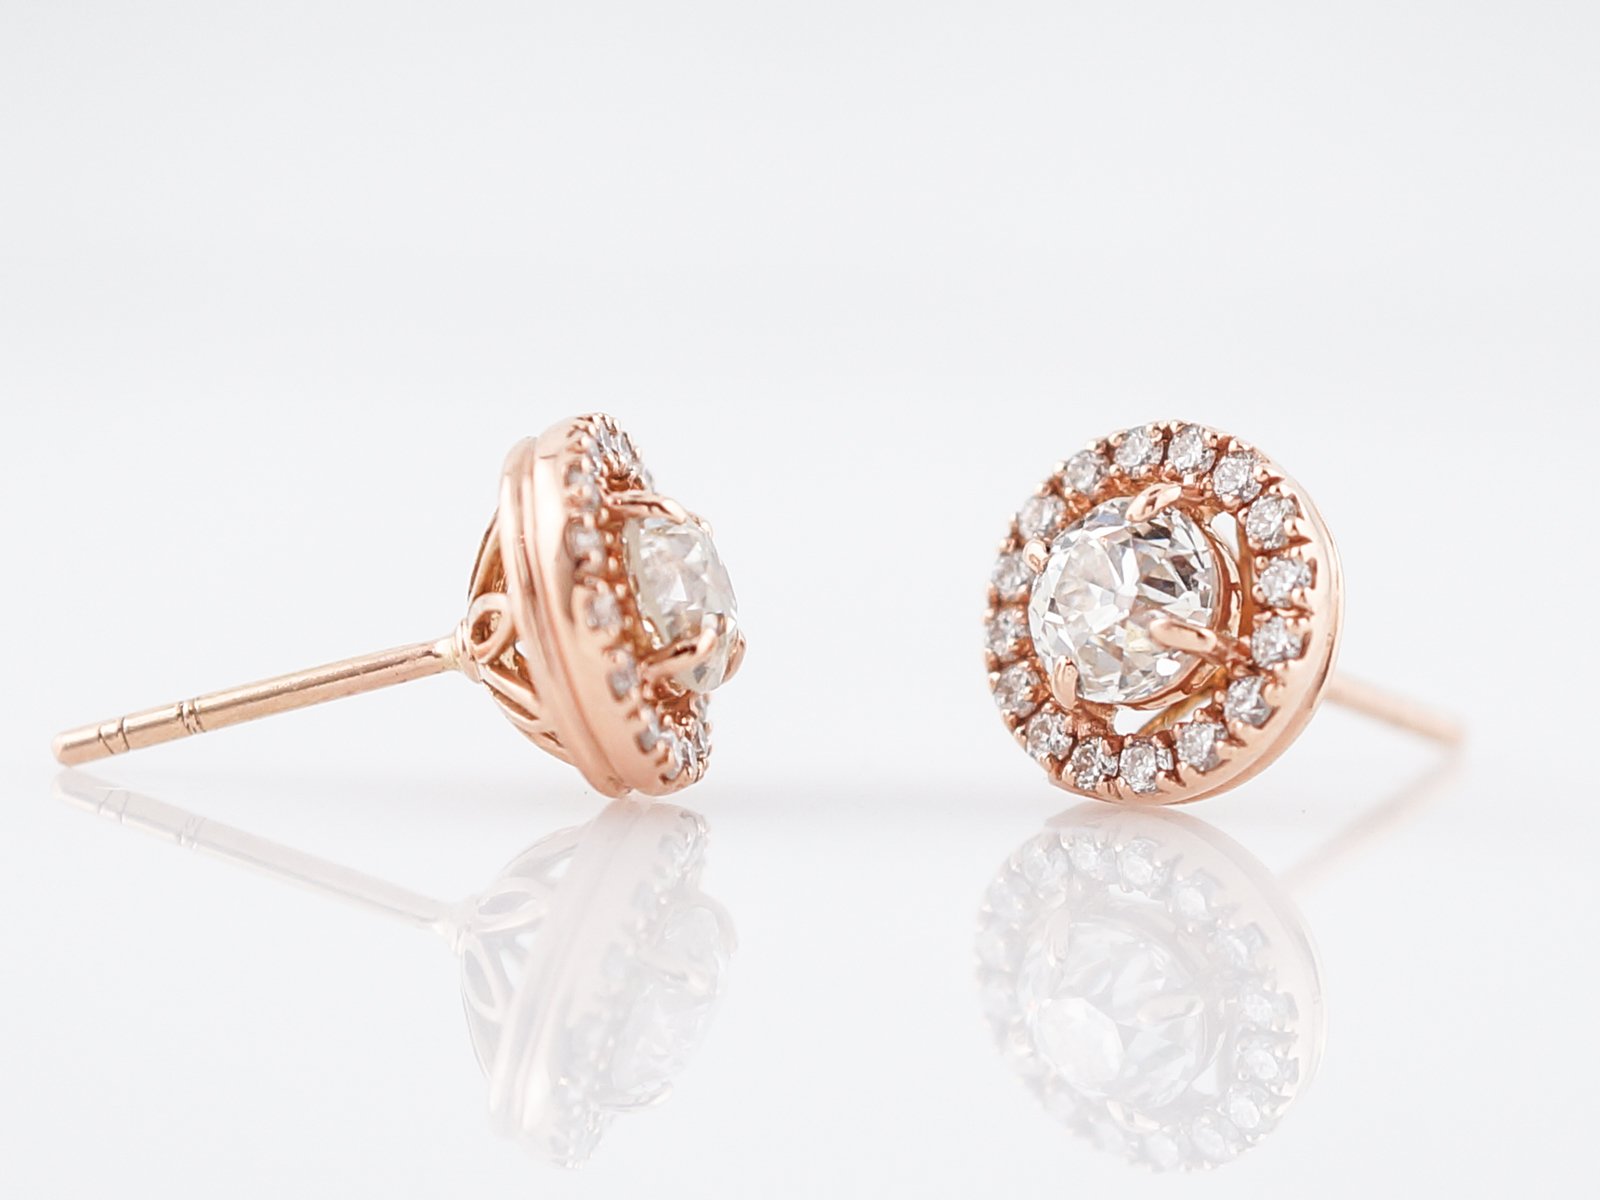 Modern Earrings 1.34 Old European Cut Diamonds in 14k Rose Gold-2